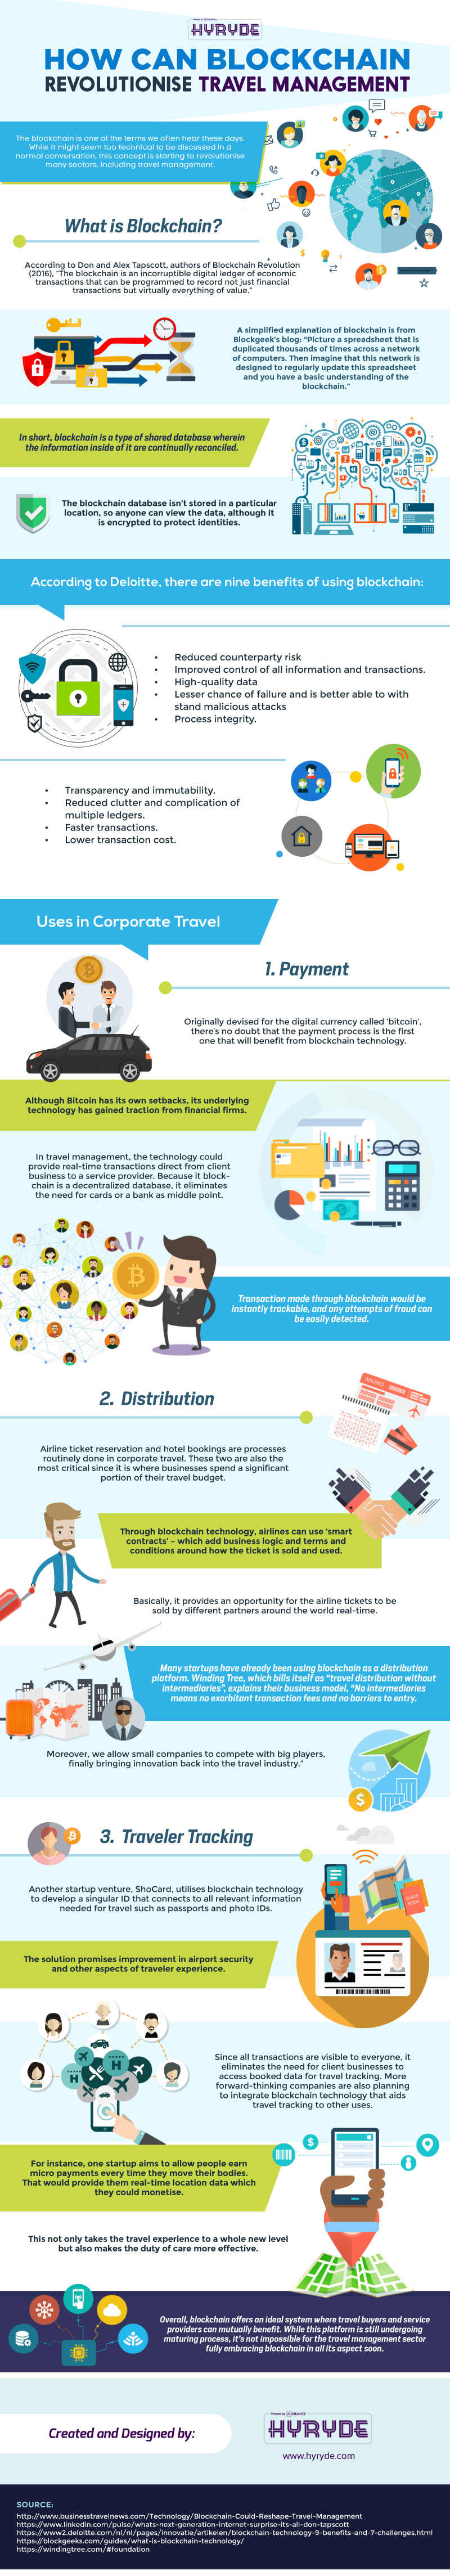 Blockchain Revolutionize Travel Management Infographic